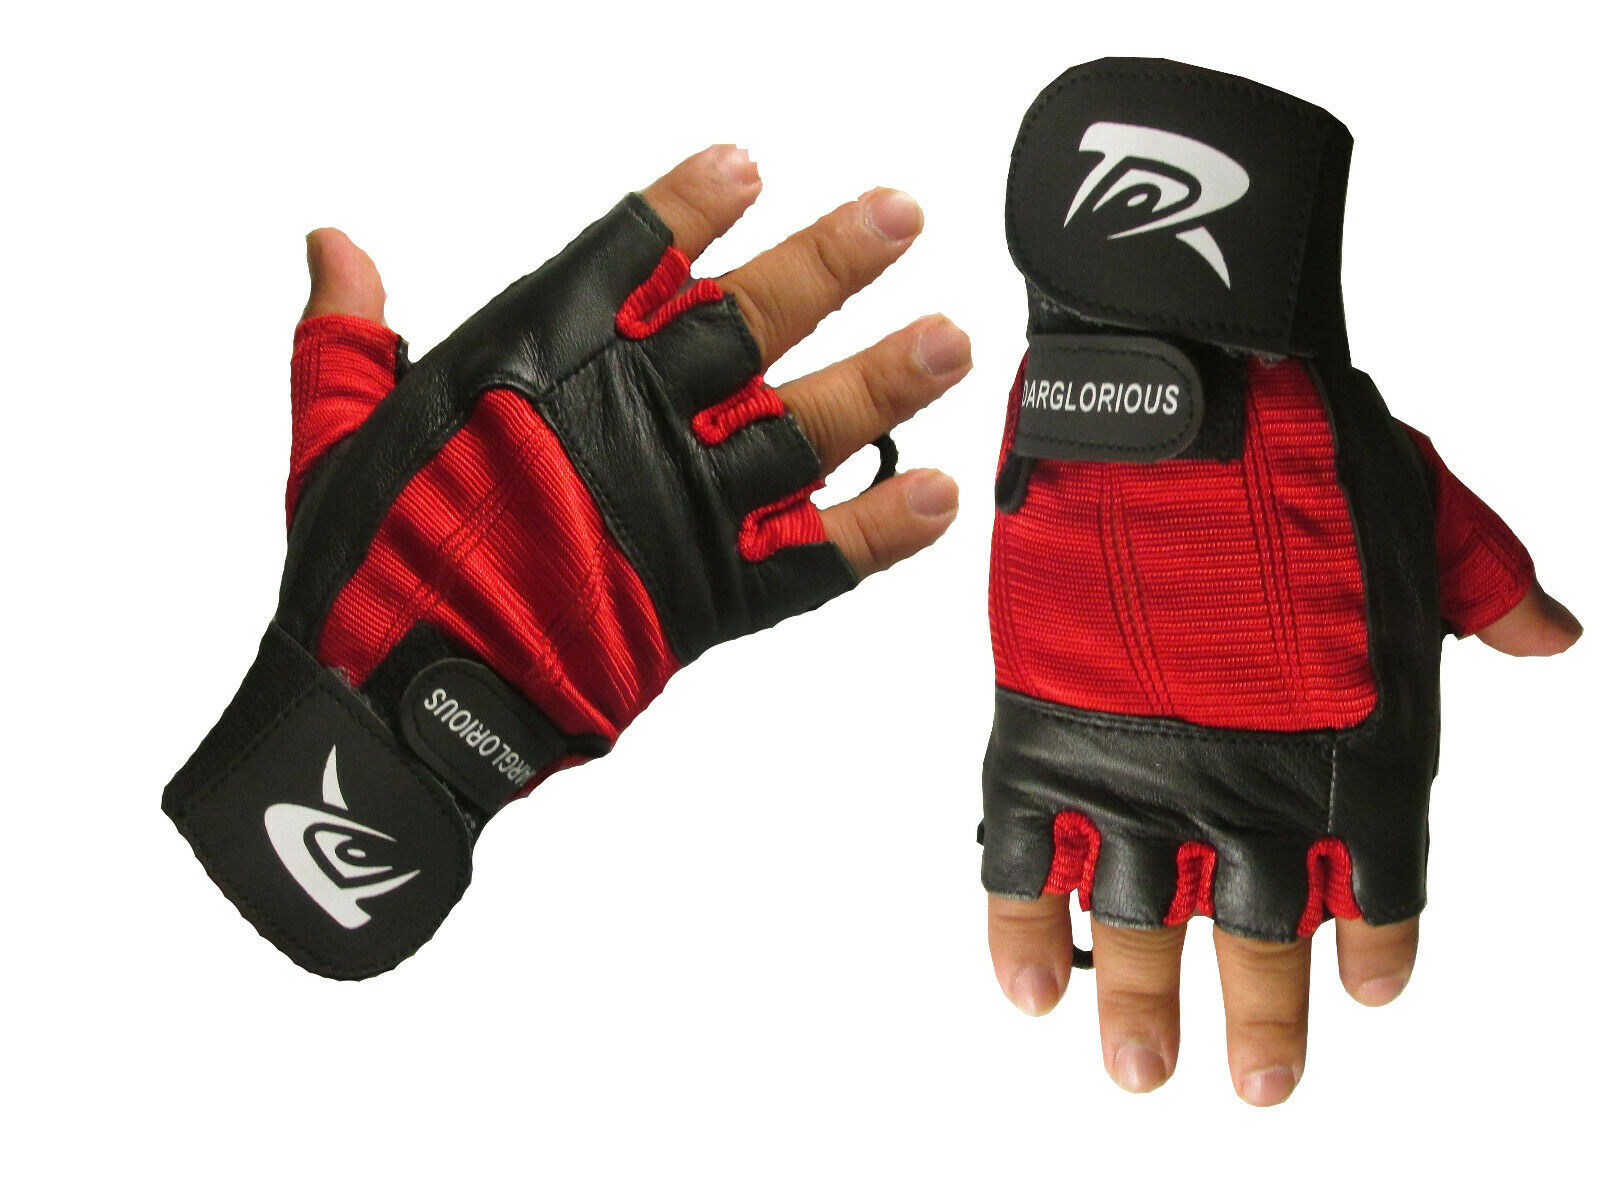 Men Gloves Weight Lifting Gym Training Leather Wrist Padded Wraps Cycling Women